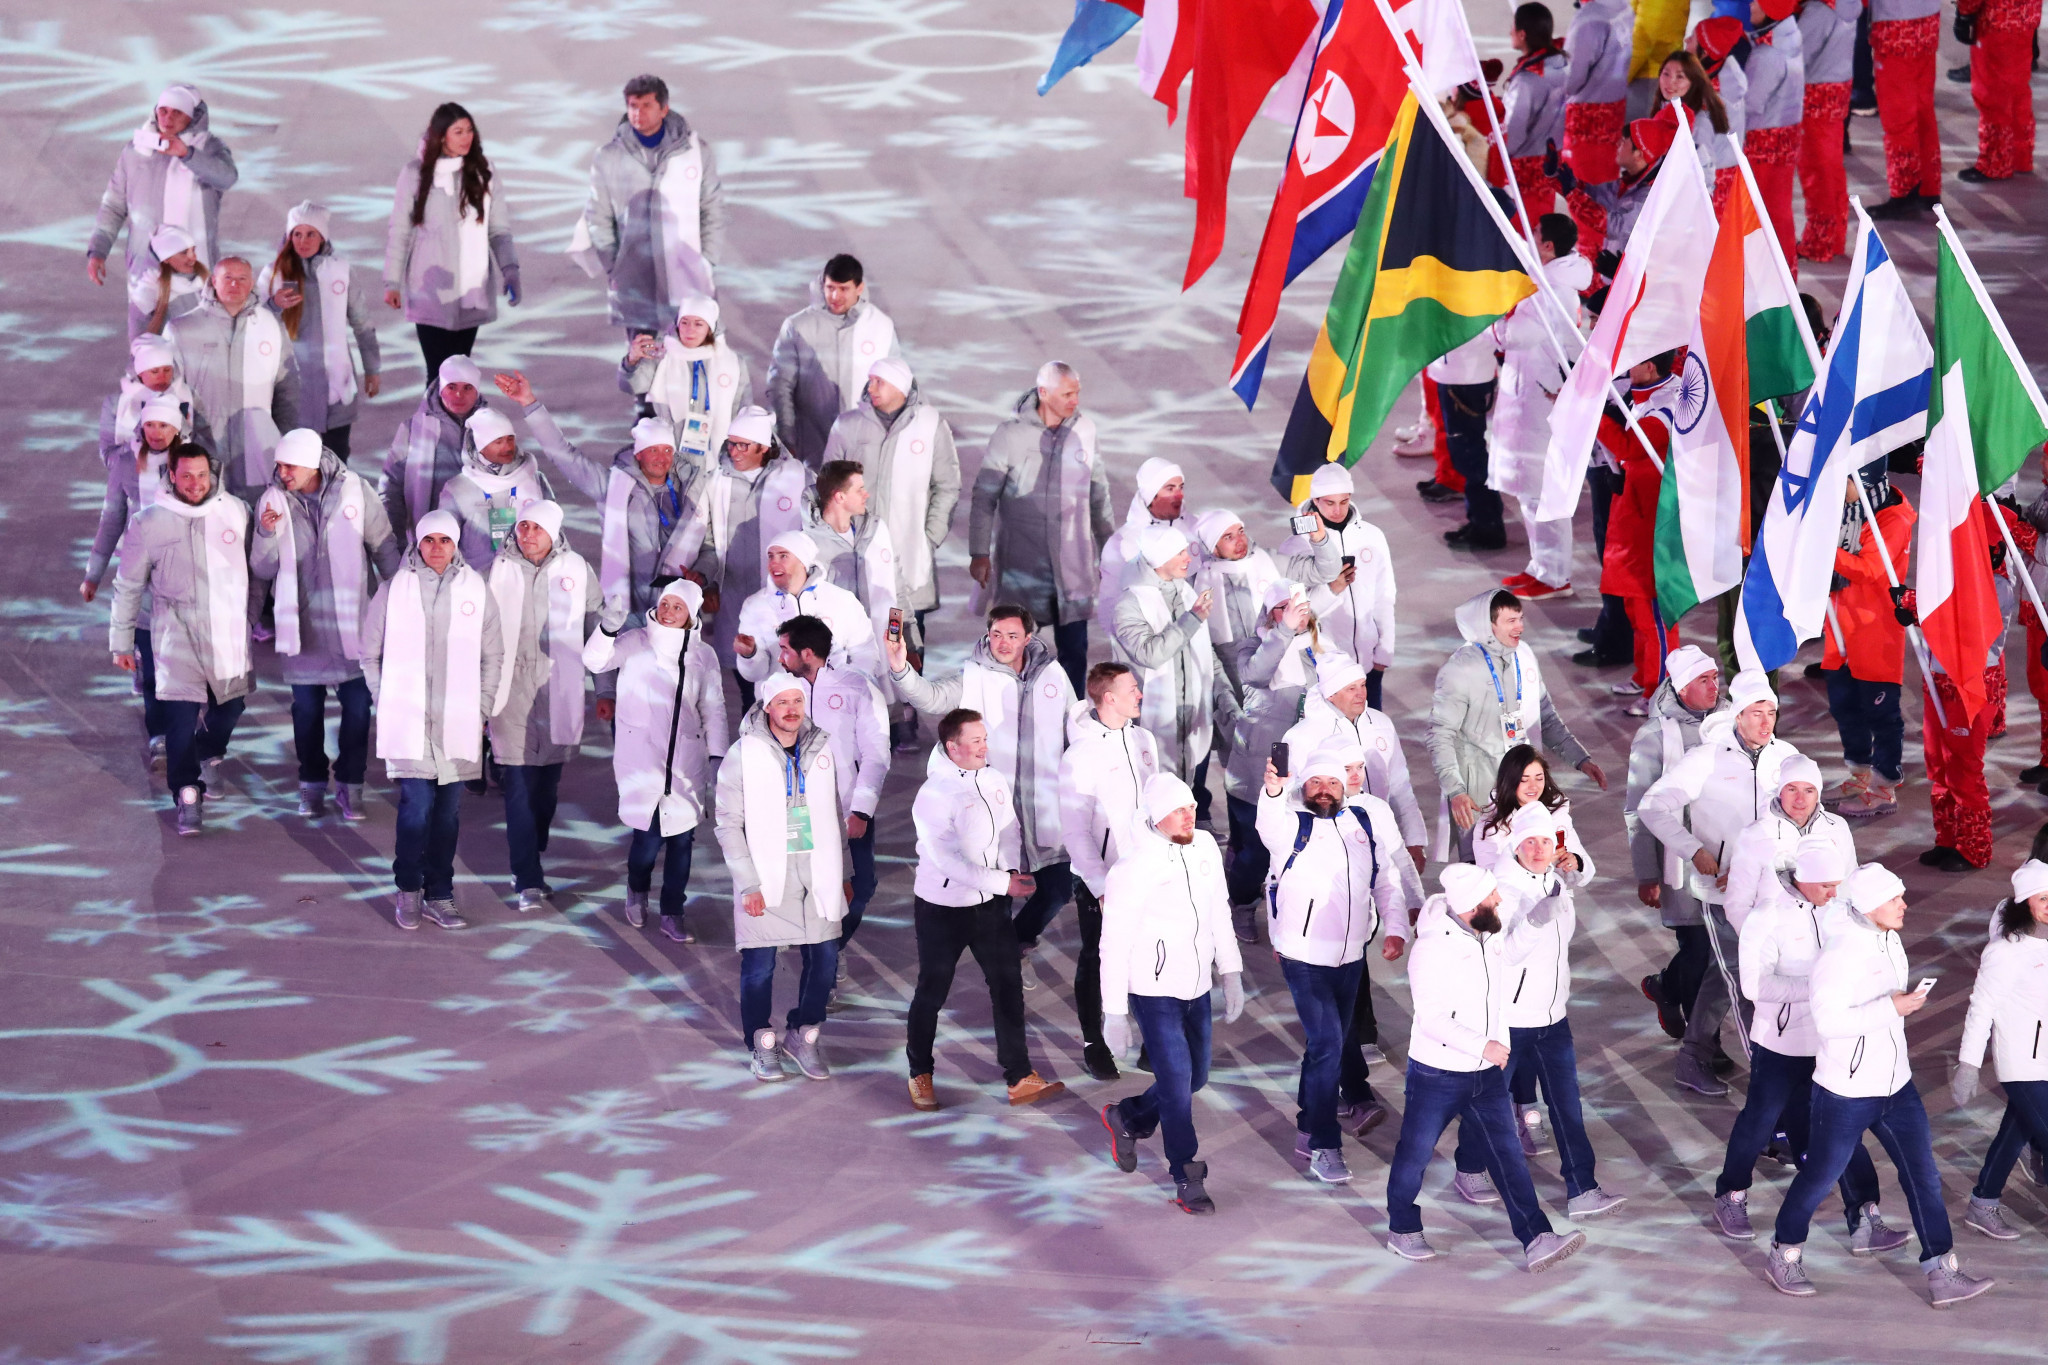 The OAR delegation's behaviour at Pyeongchang 2018 should not be taken as a sign of genuine cultural change ©Getty Images